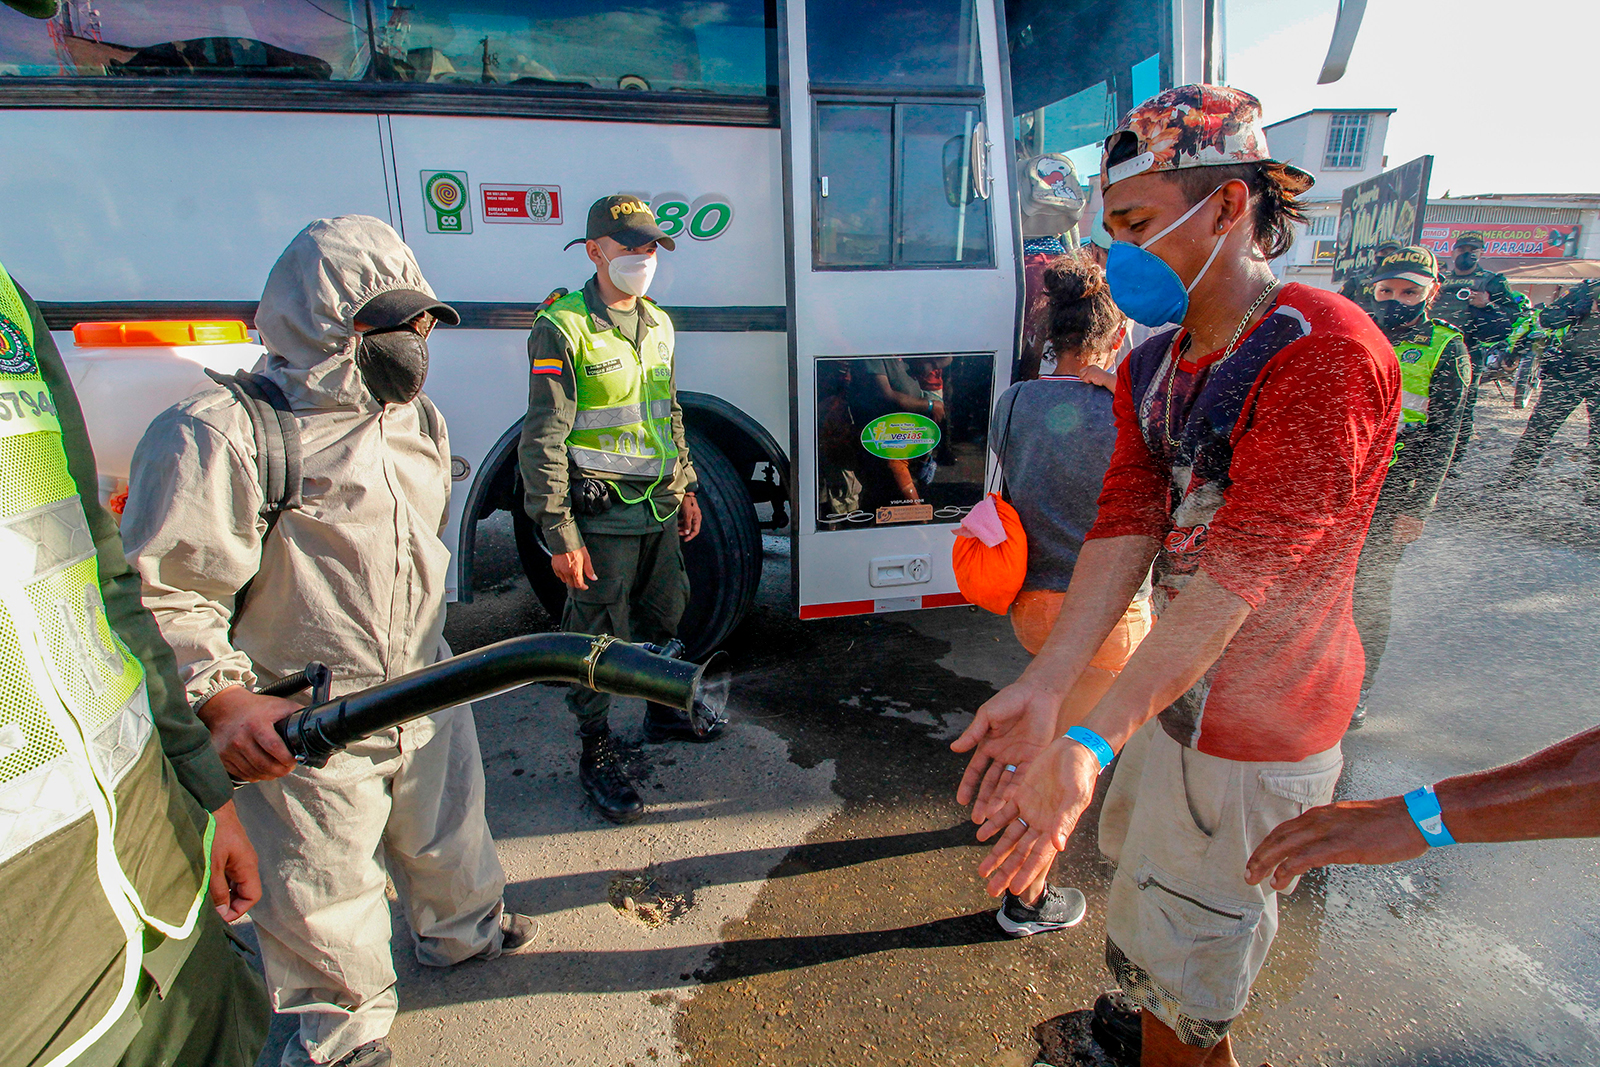 Police officers spray disinfectant on Venezuelans and their baggage as they are being transferred from the Simon Bolivar international crossing point to the Tienditas International Bridge where they will be housed in tents, in Cucuta, Colombia, on the border with Venezuela, on June 14.